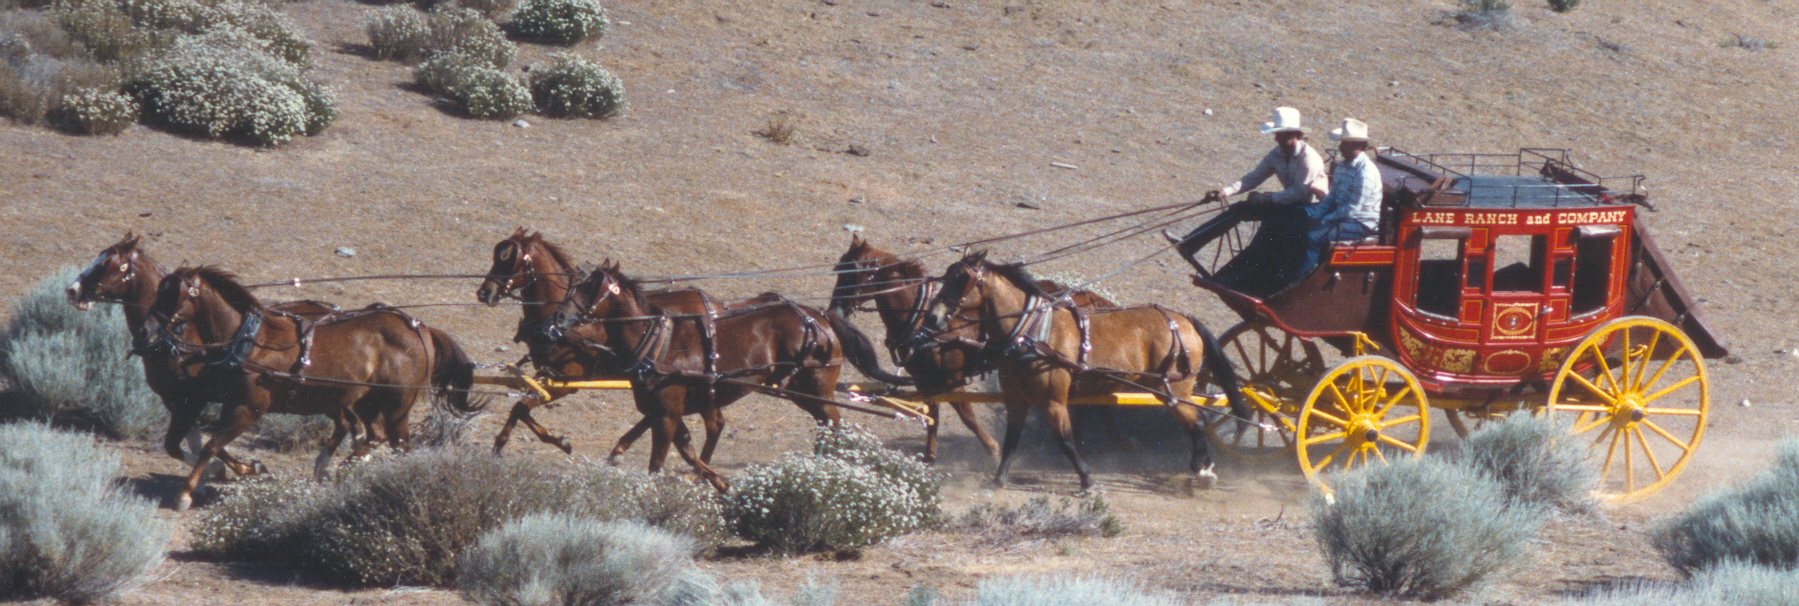 CONCORD STAGECOACH WITH A 6-UP